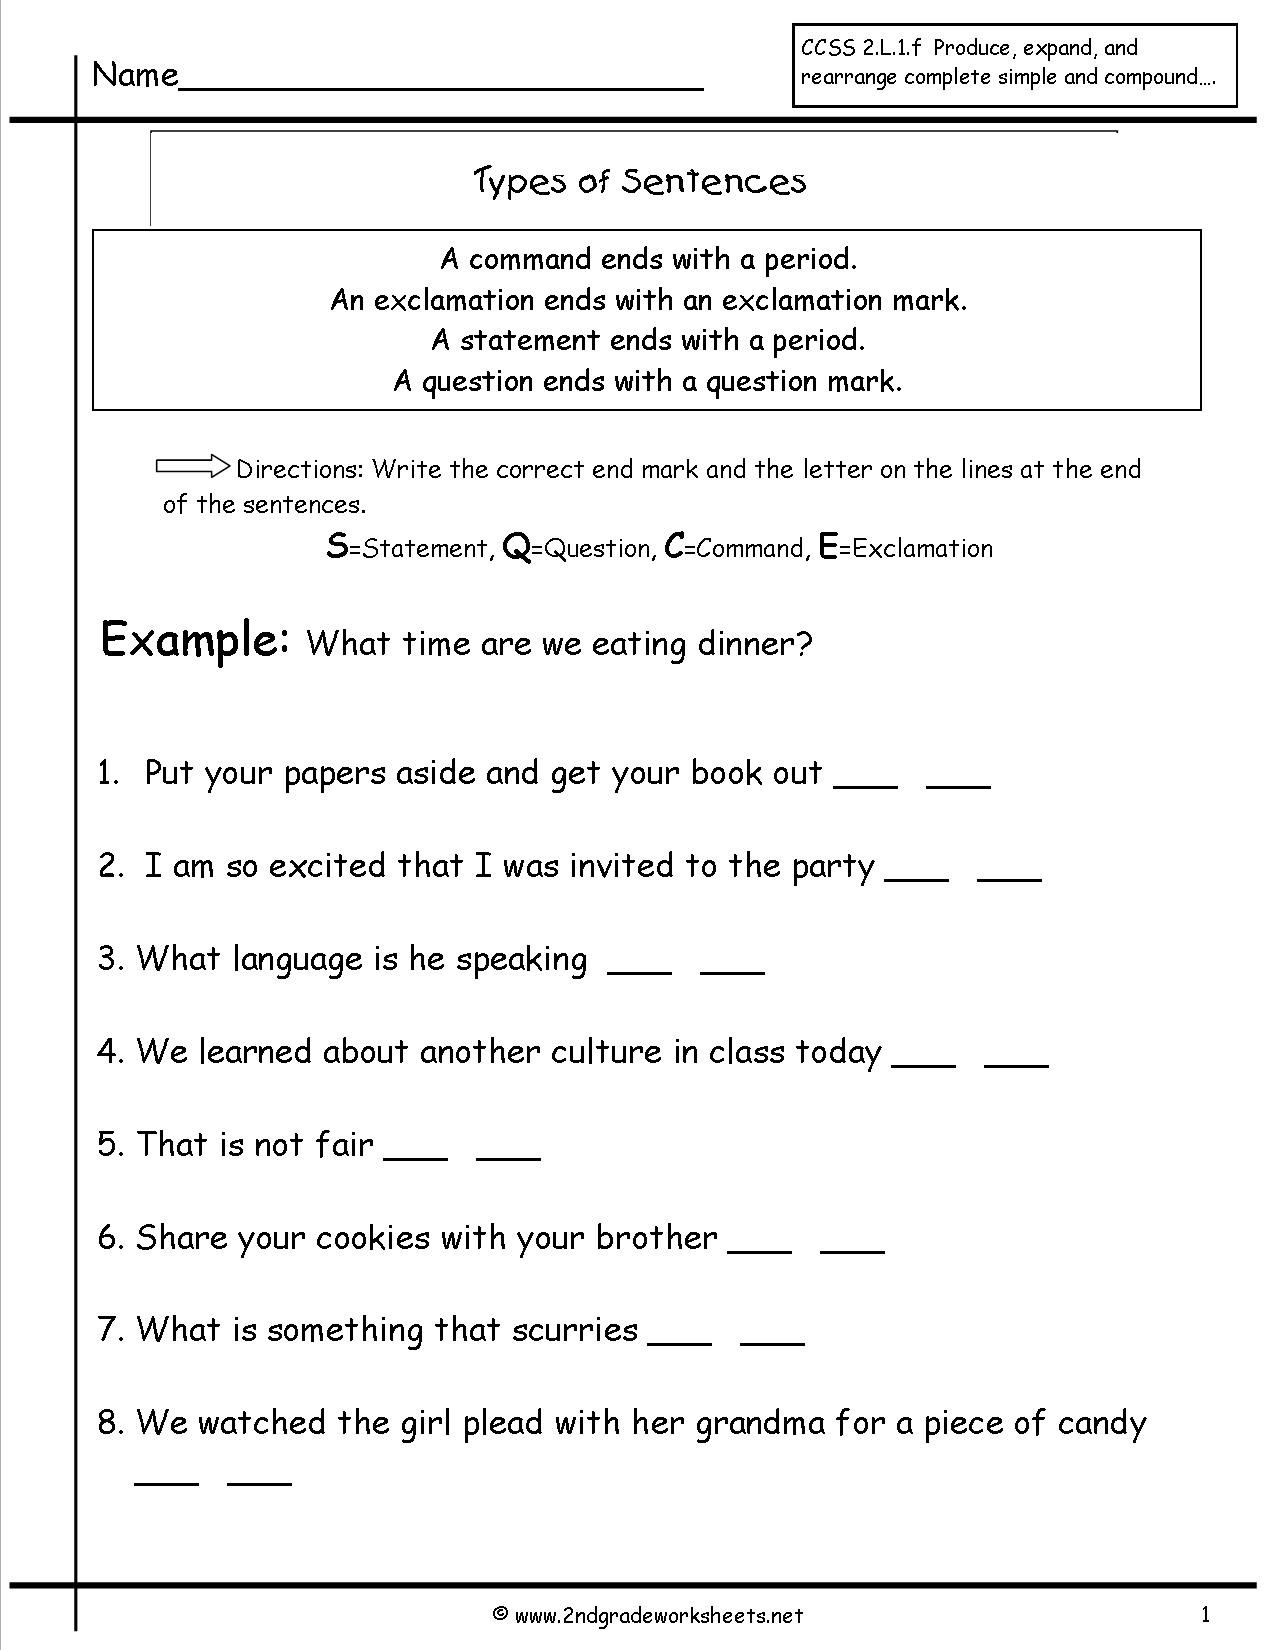 Complete Sentence Worksheets 4th Grade Second Grade Sentences Worksheets Ccss 4th Sentence